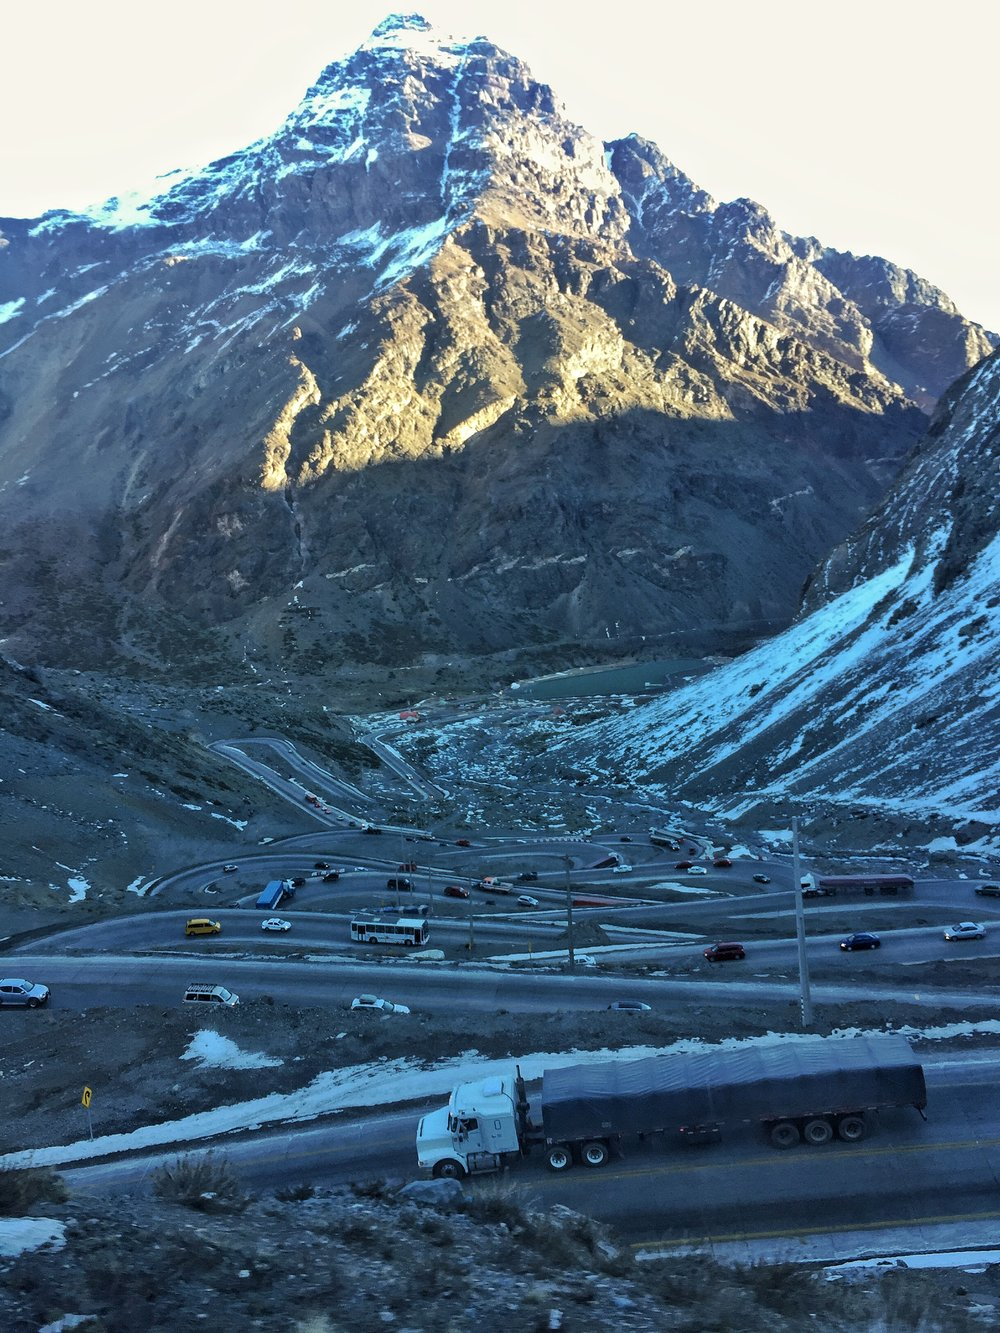 Crawling up the Andes to border control.